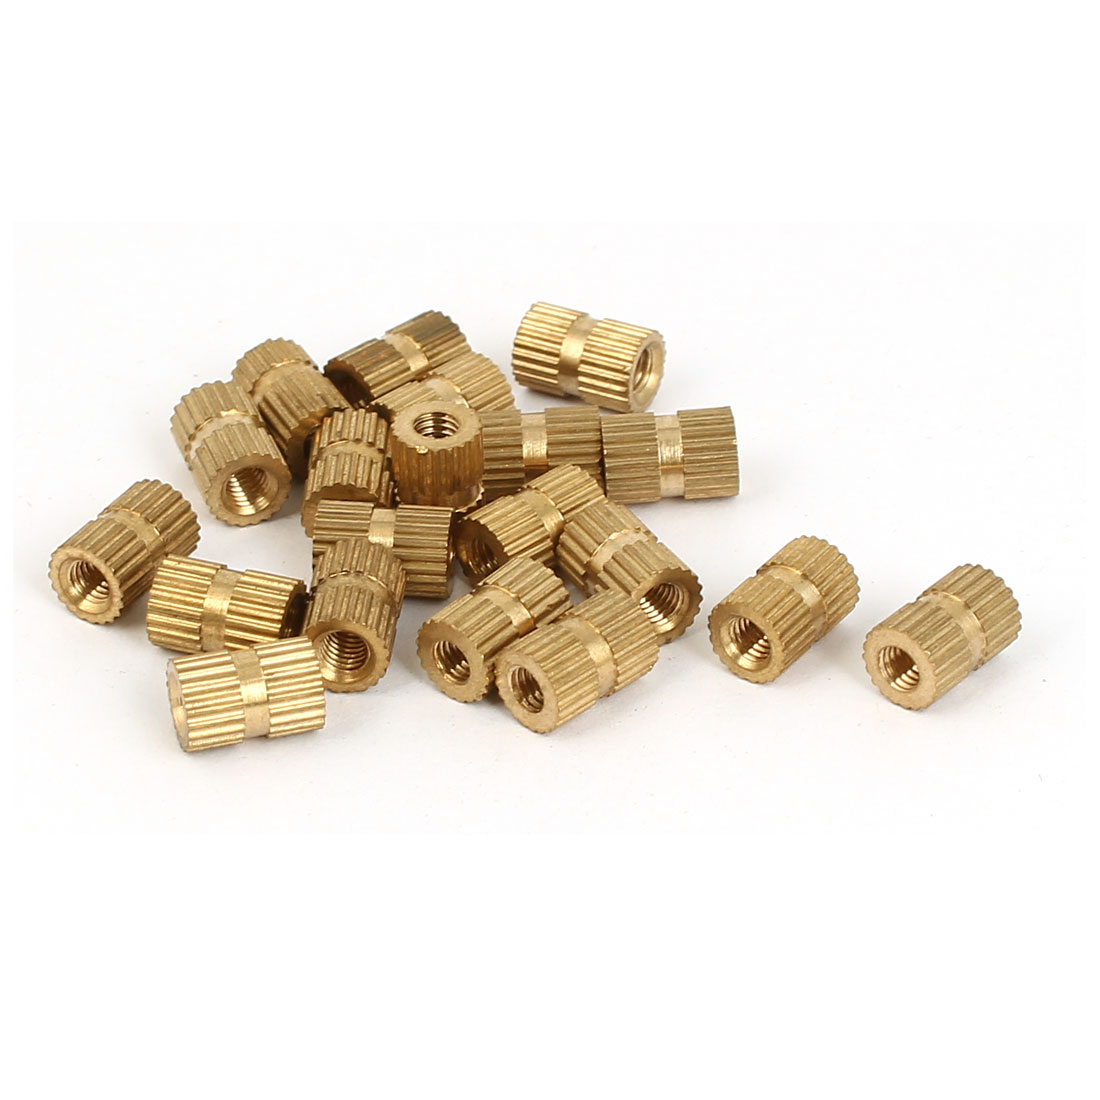 M3 x 5mm x 8mm Female Threaded Insert Embedded Brass Knurled Thumb Nuts 20 Pcs